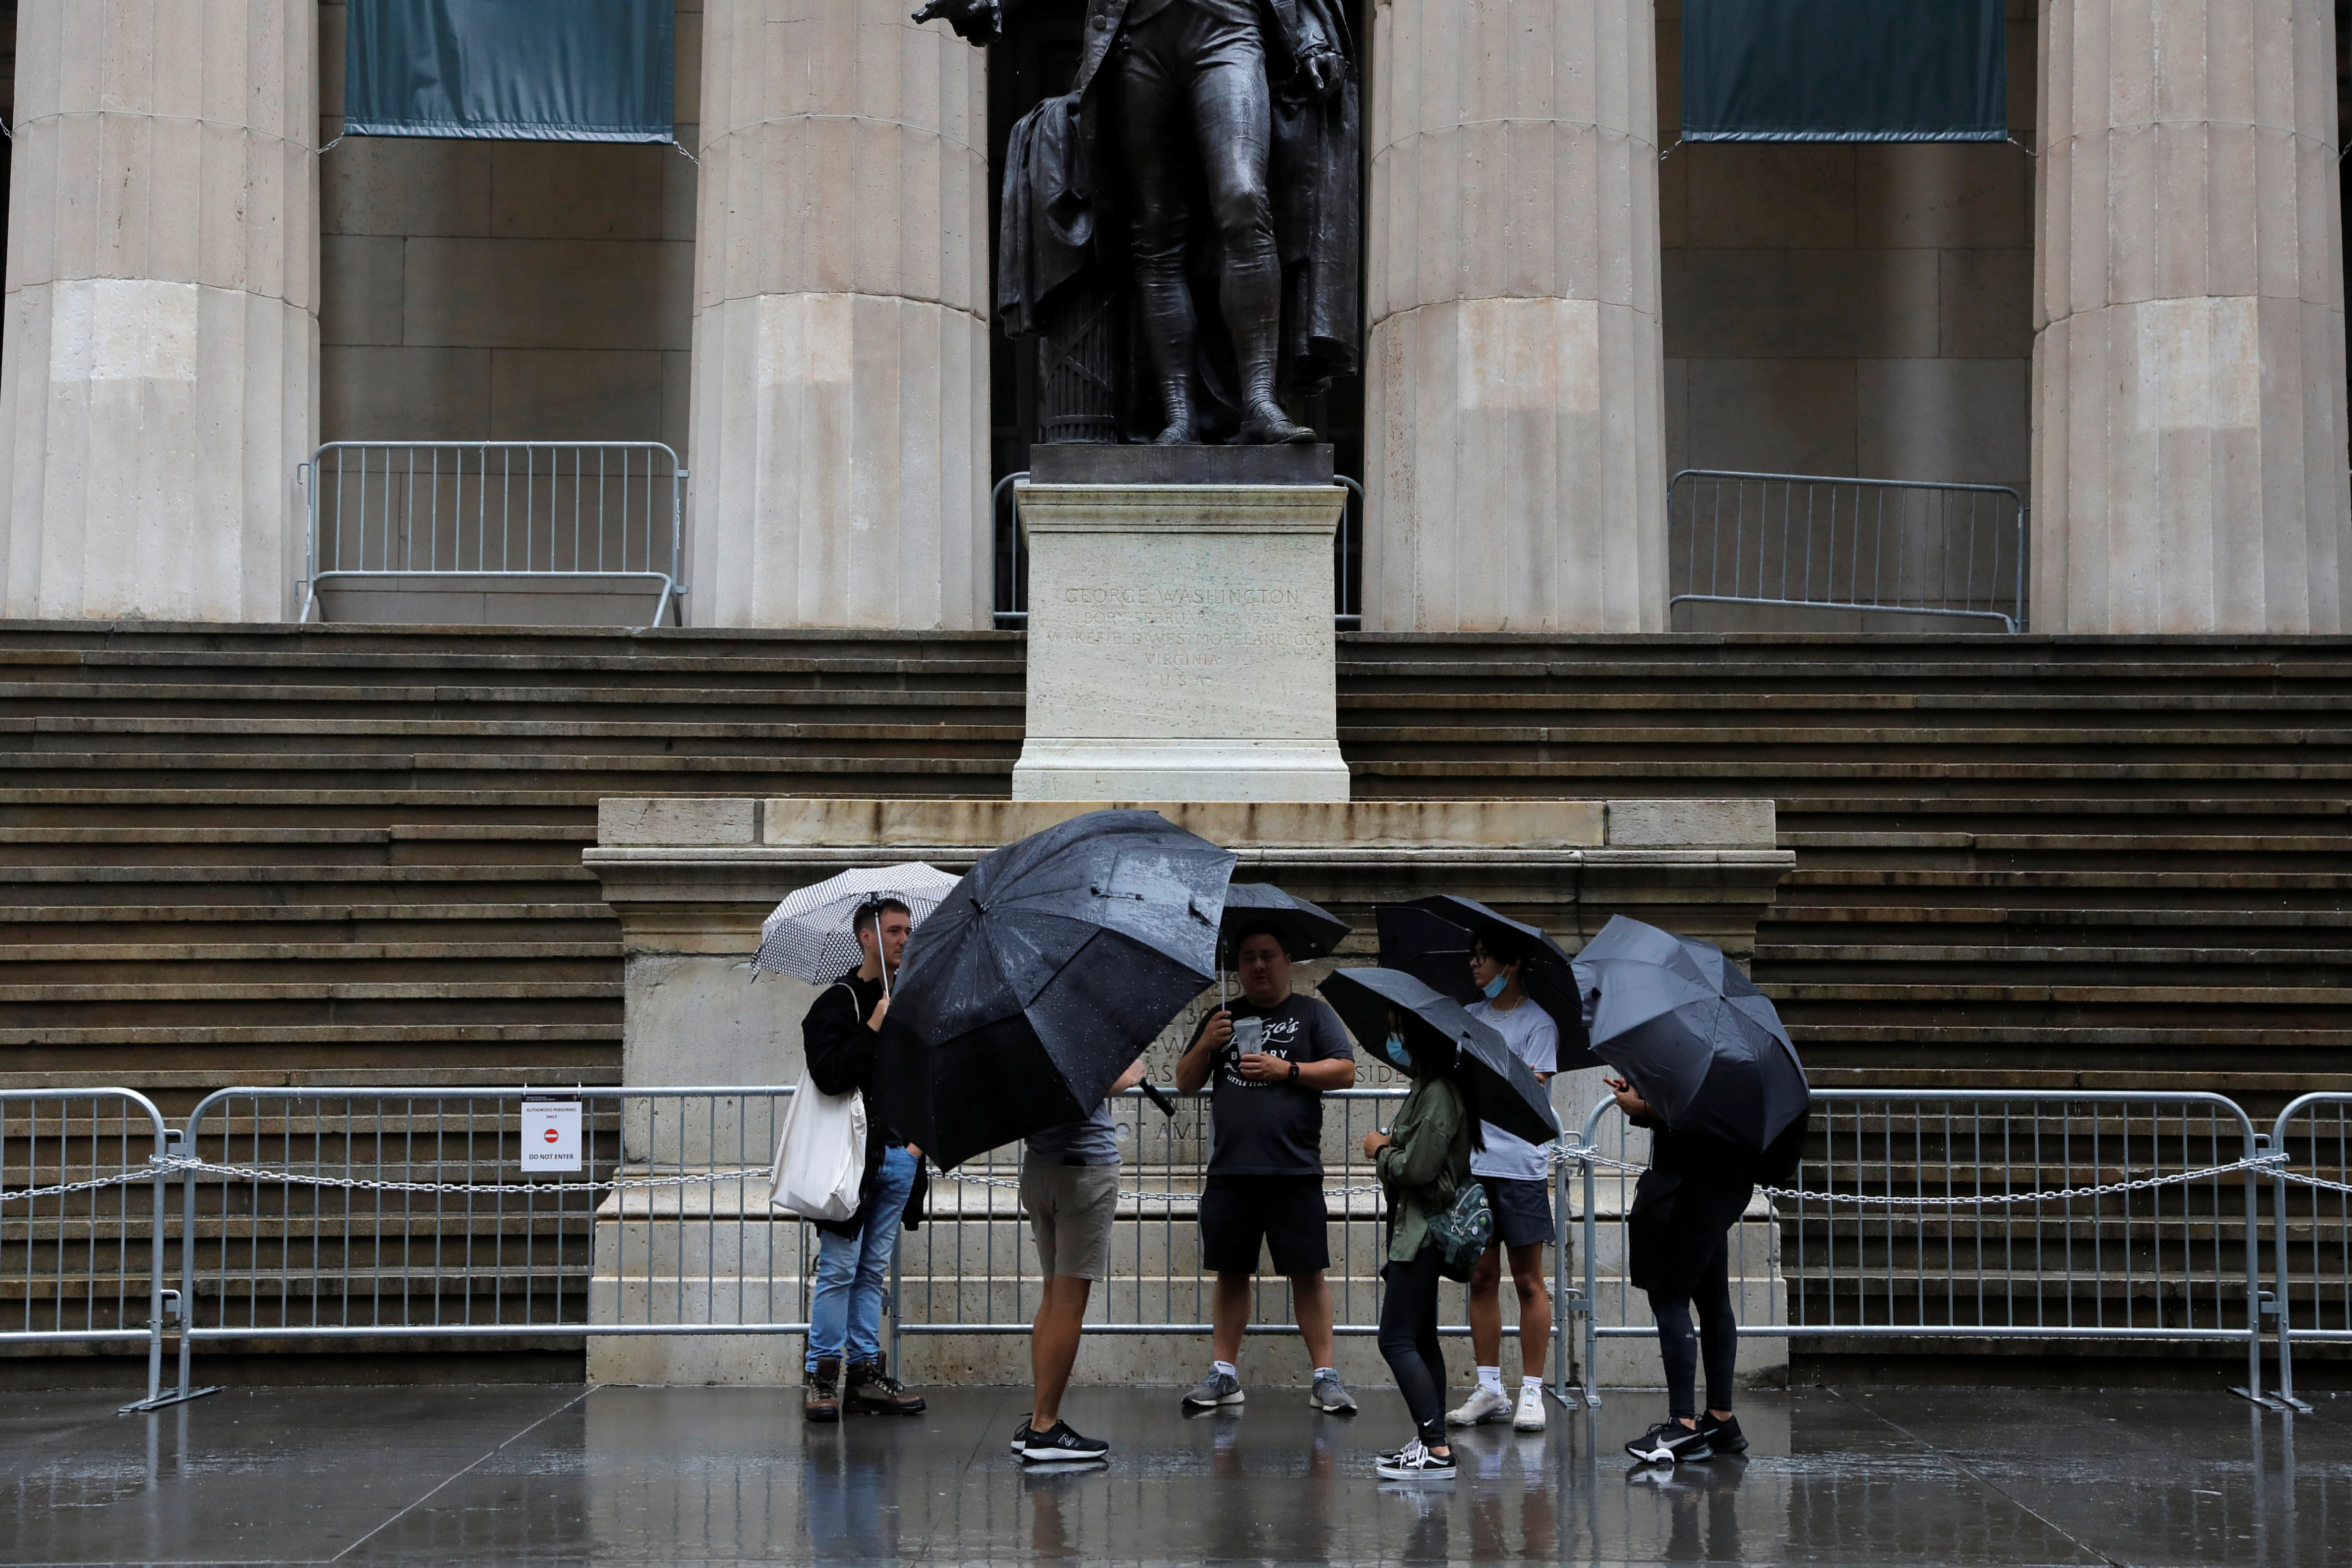 People on an organized Airbnb tour gather near the statue of former U.S. President George Washington outside Federal Hall on Wall Street, as Tropical Storm Henri affected the region in Manhattan, New York City, U.S., August 23, 2021. REUTERS/Andrew Kelly